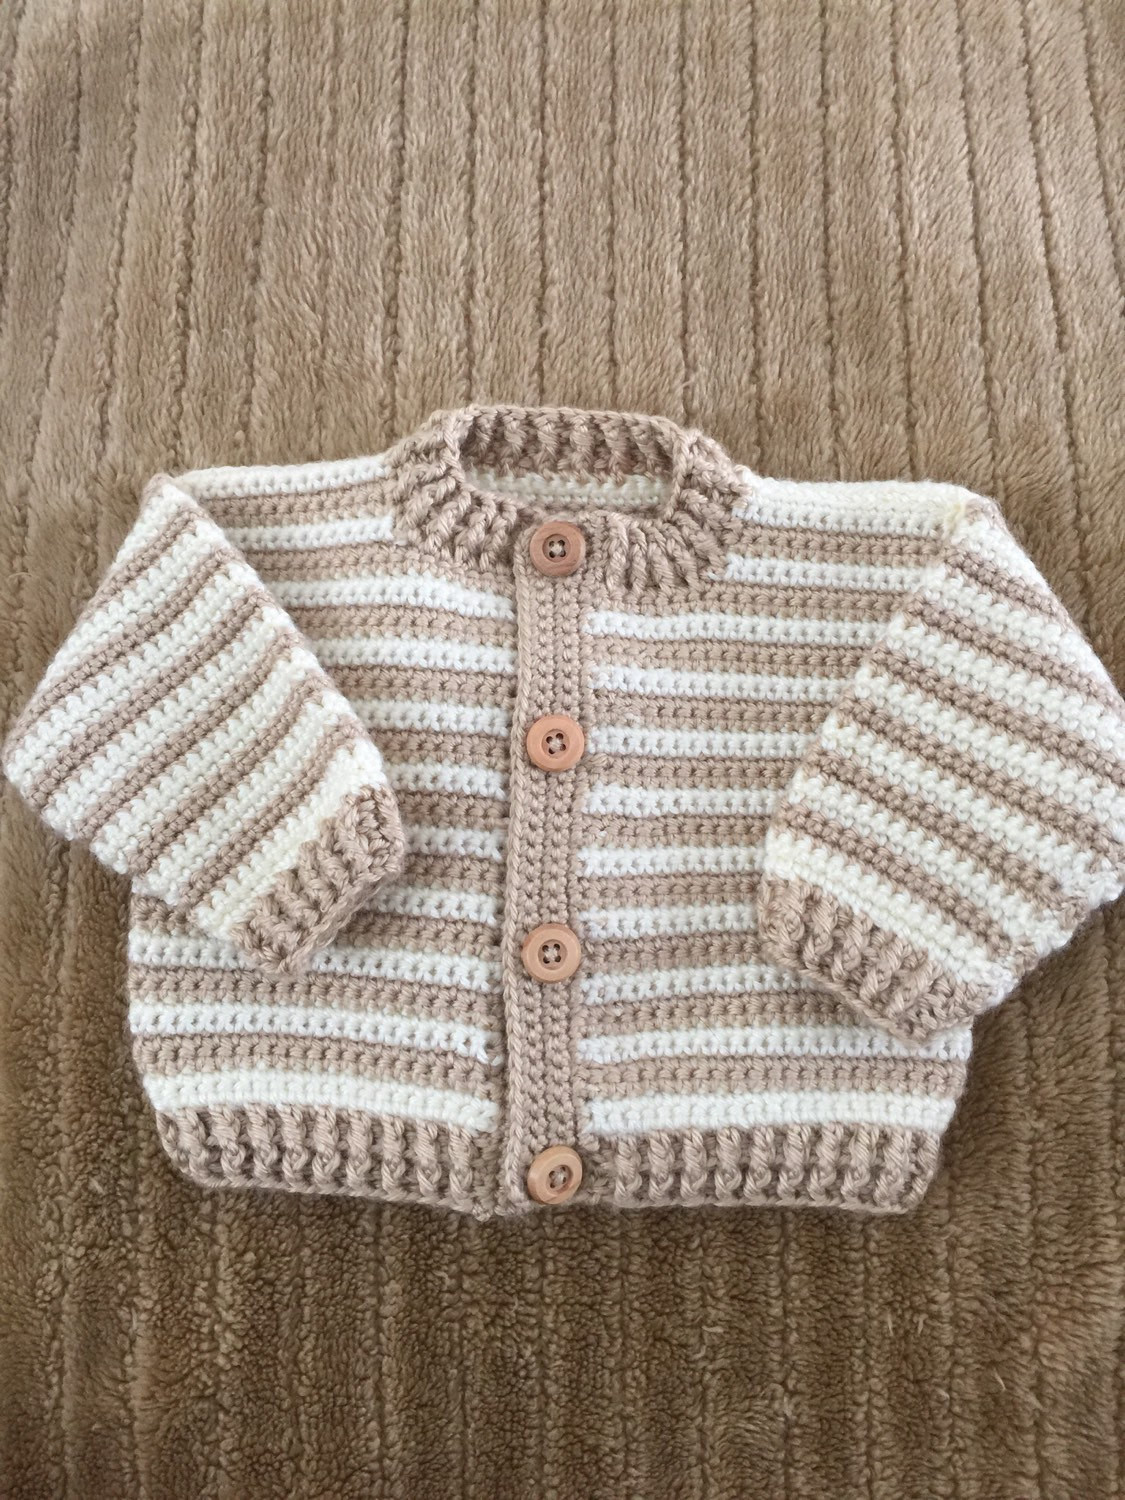 Crocheted baby boy sweater